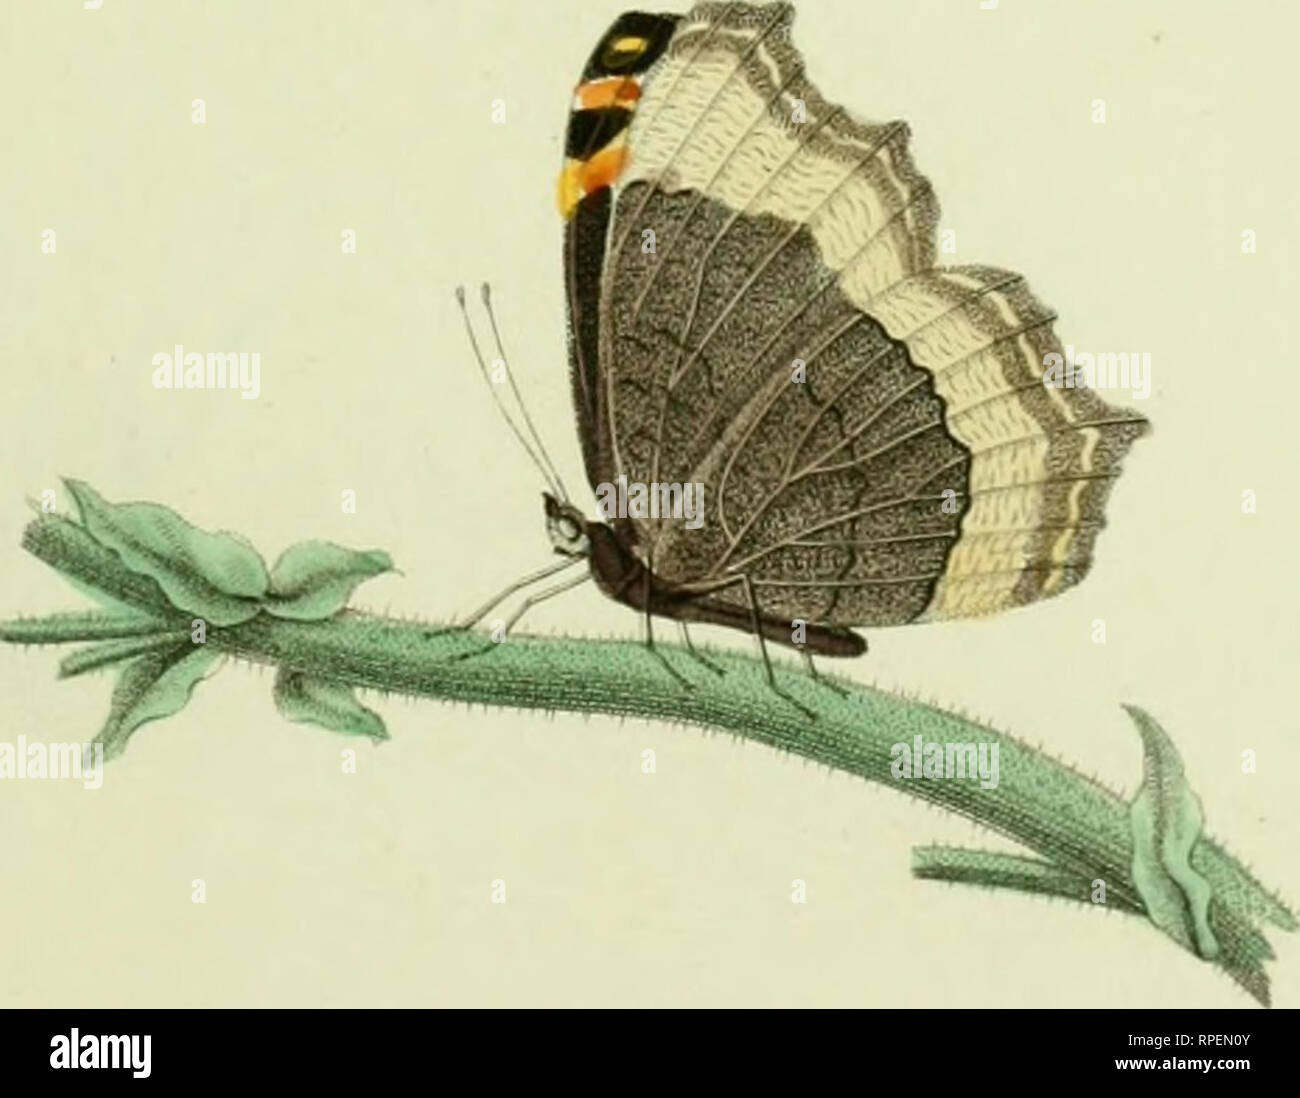 . American entomology : a description of the insects of North American, with illustrations drawn and colored after nature. Insects; Insects -- North America. la/it-.'ja lur.iiUi Drnwit f'v K.W.Worii '27 Einrrayt-,/ ^y CTi(/•>'!it. Please note that these images are extracted from scanned page images that may have been digitally enhanced for readability - coloration and appearance of these illustrations may not perfectly resemble the original work.. Say, Thomas, 1787-1834. Boston : Estes & Lauriat - Stock Image